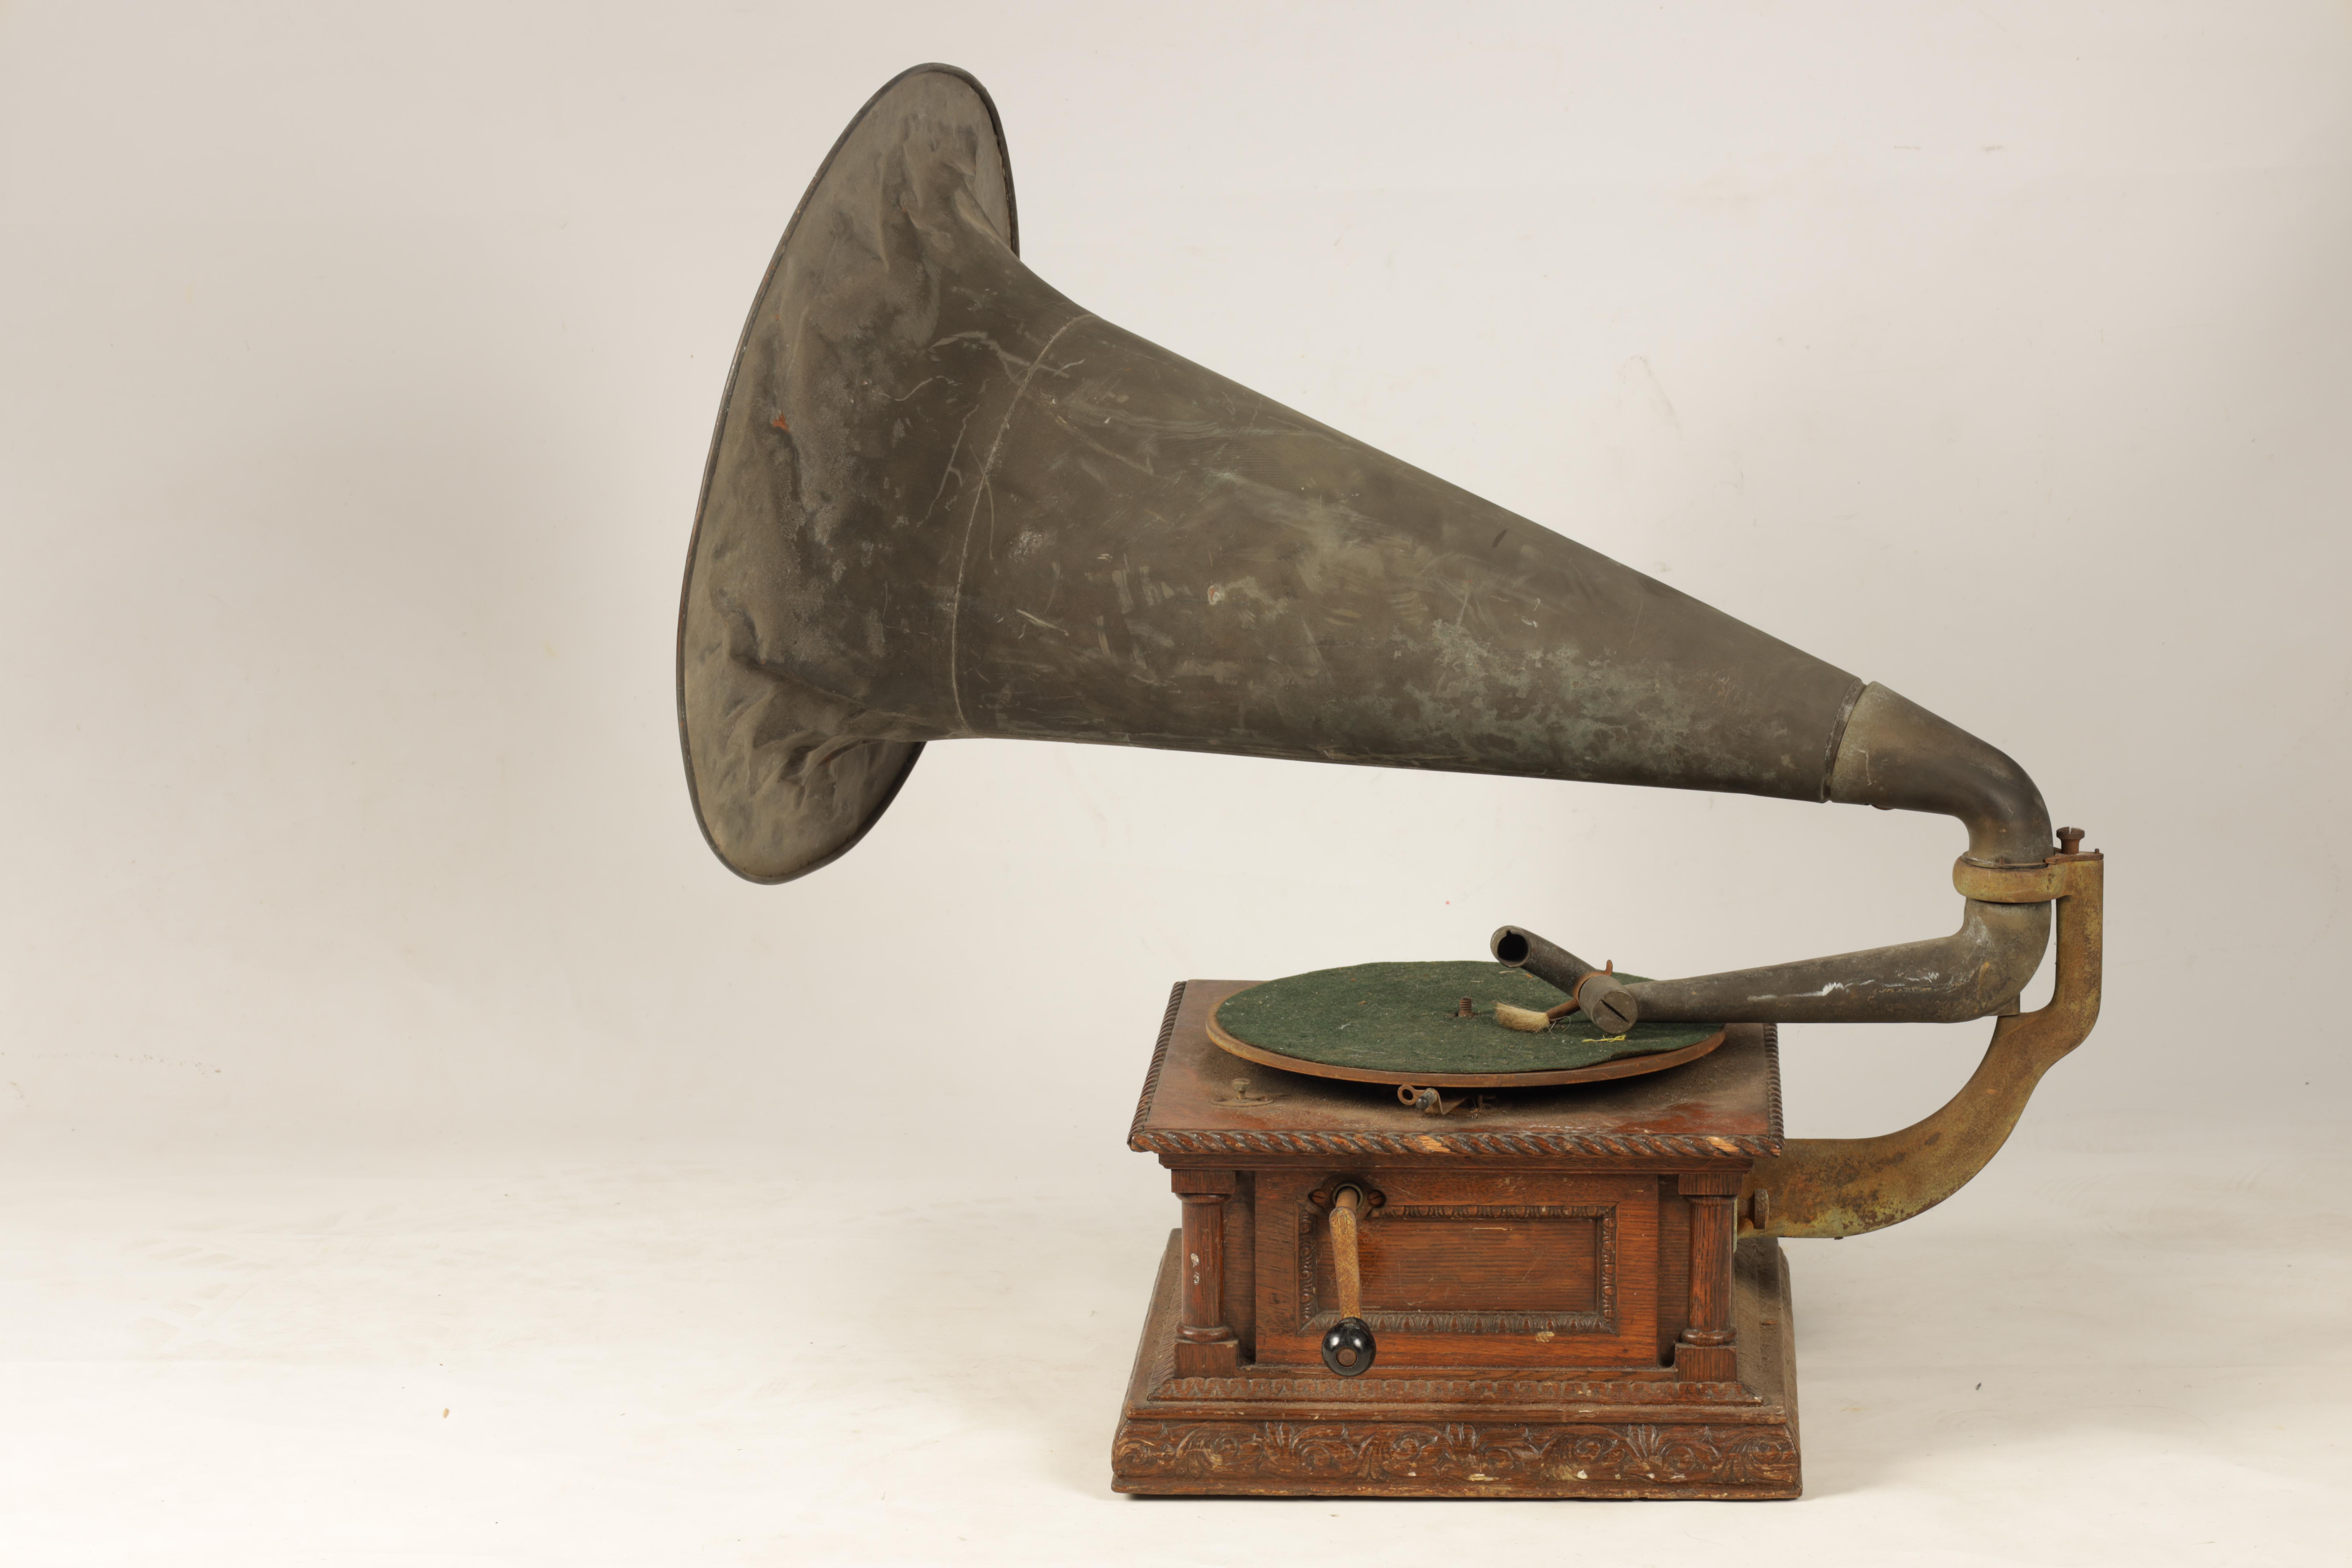 AN EARLY 20TH CENTURY OAK CASED HORN GRAMOPHONE, BY THE GRAMOPHONE & TYPEWRITER LTD having a - Image 2 of 8